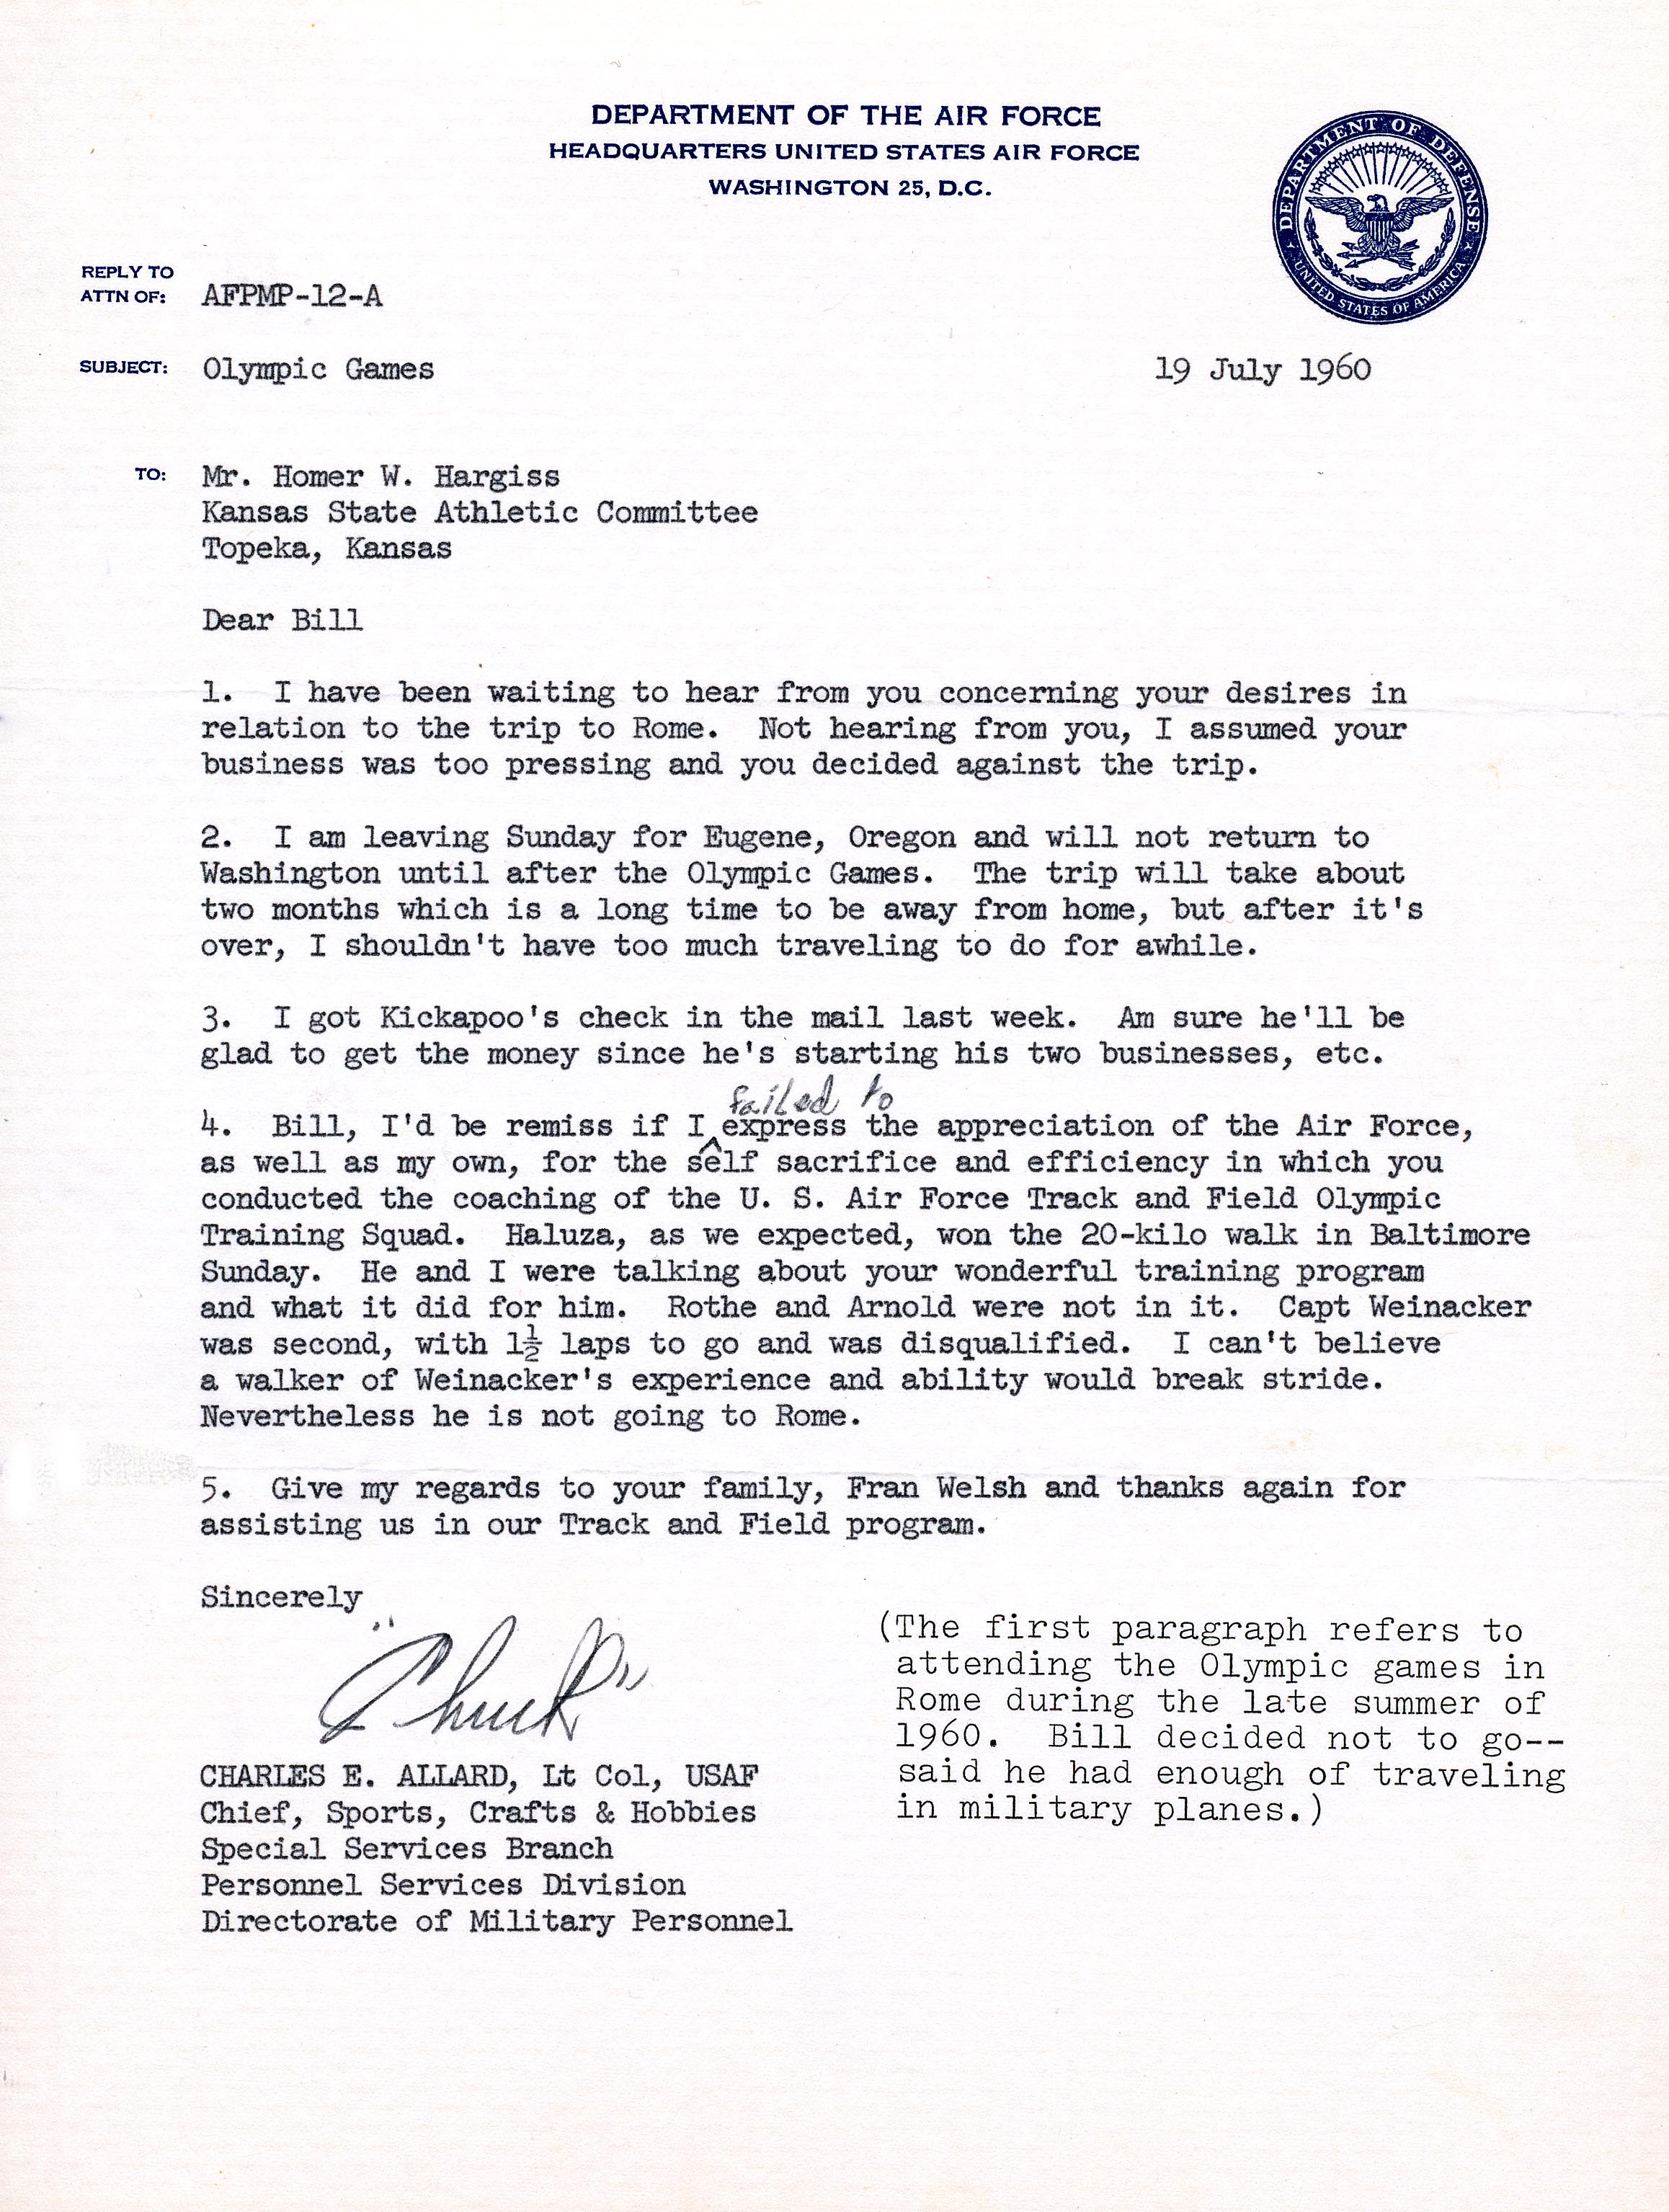 Letter of appreciation from USAF to Bill Hargiss 1960 GqRTqqJE